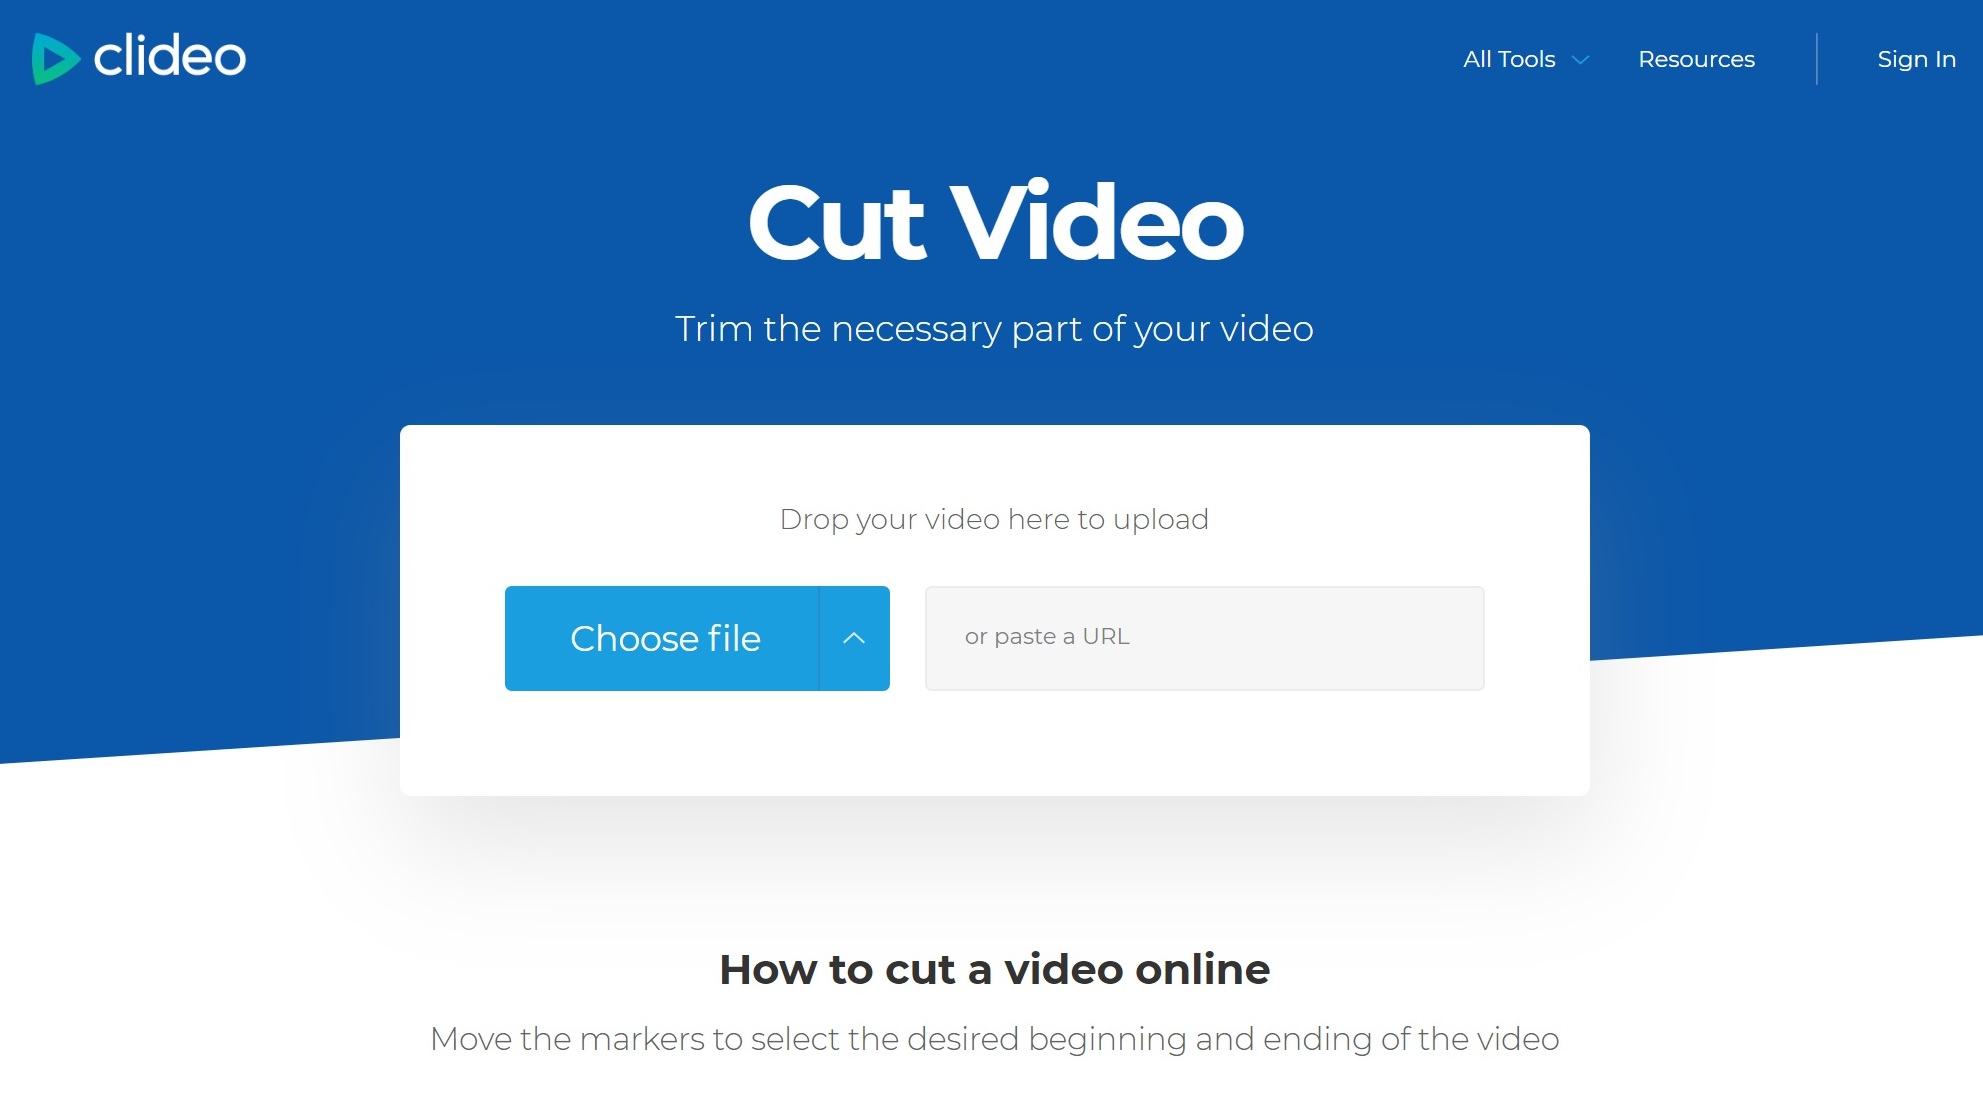 Add a video to cut from computer or phone